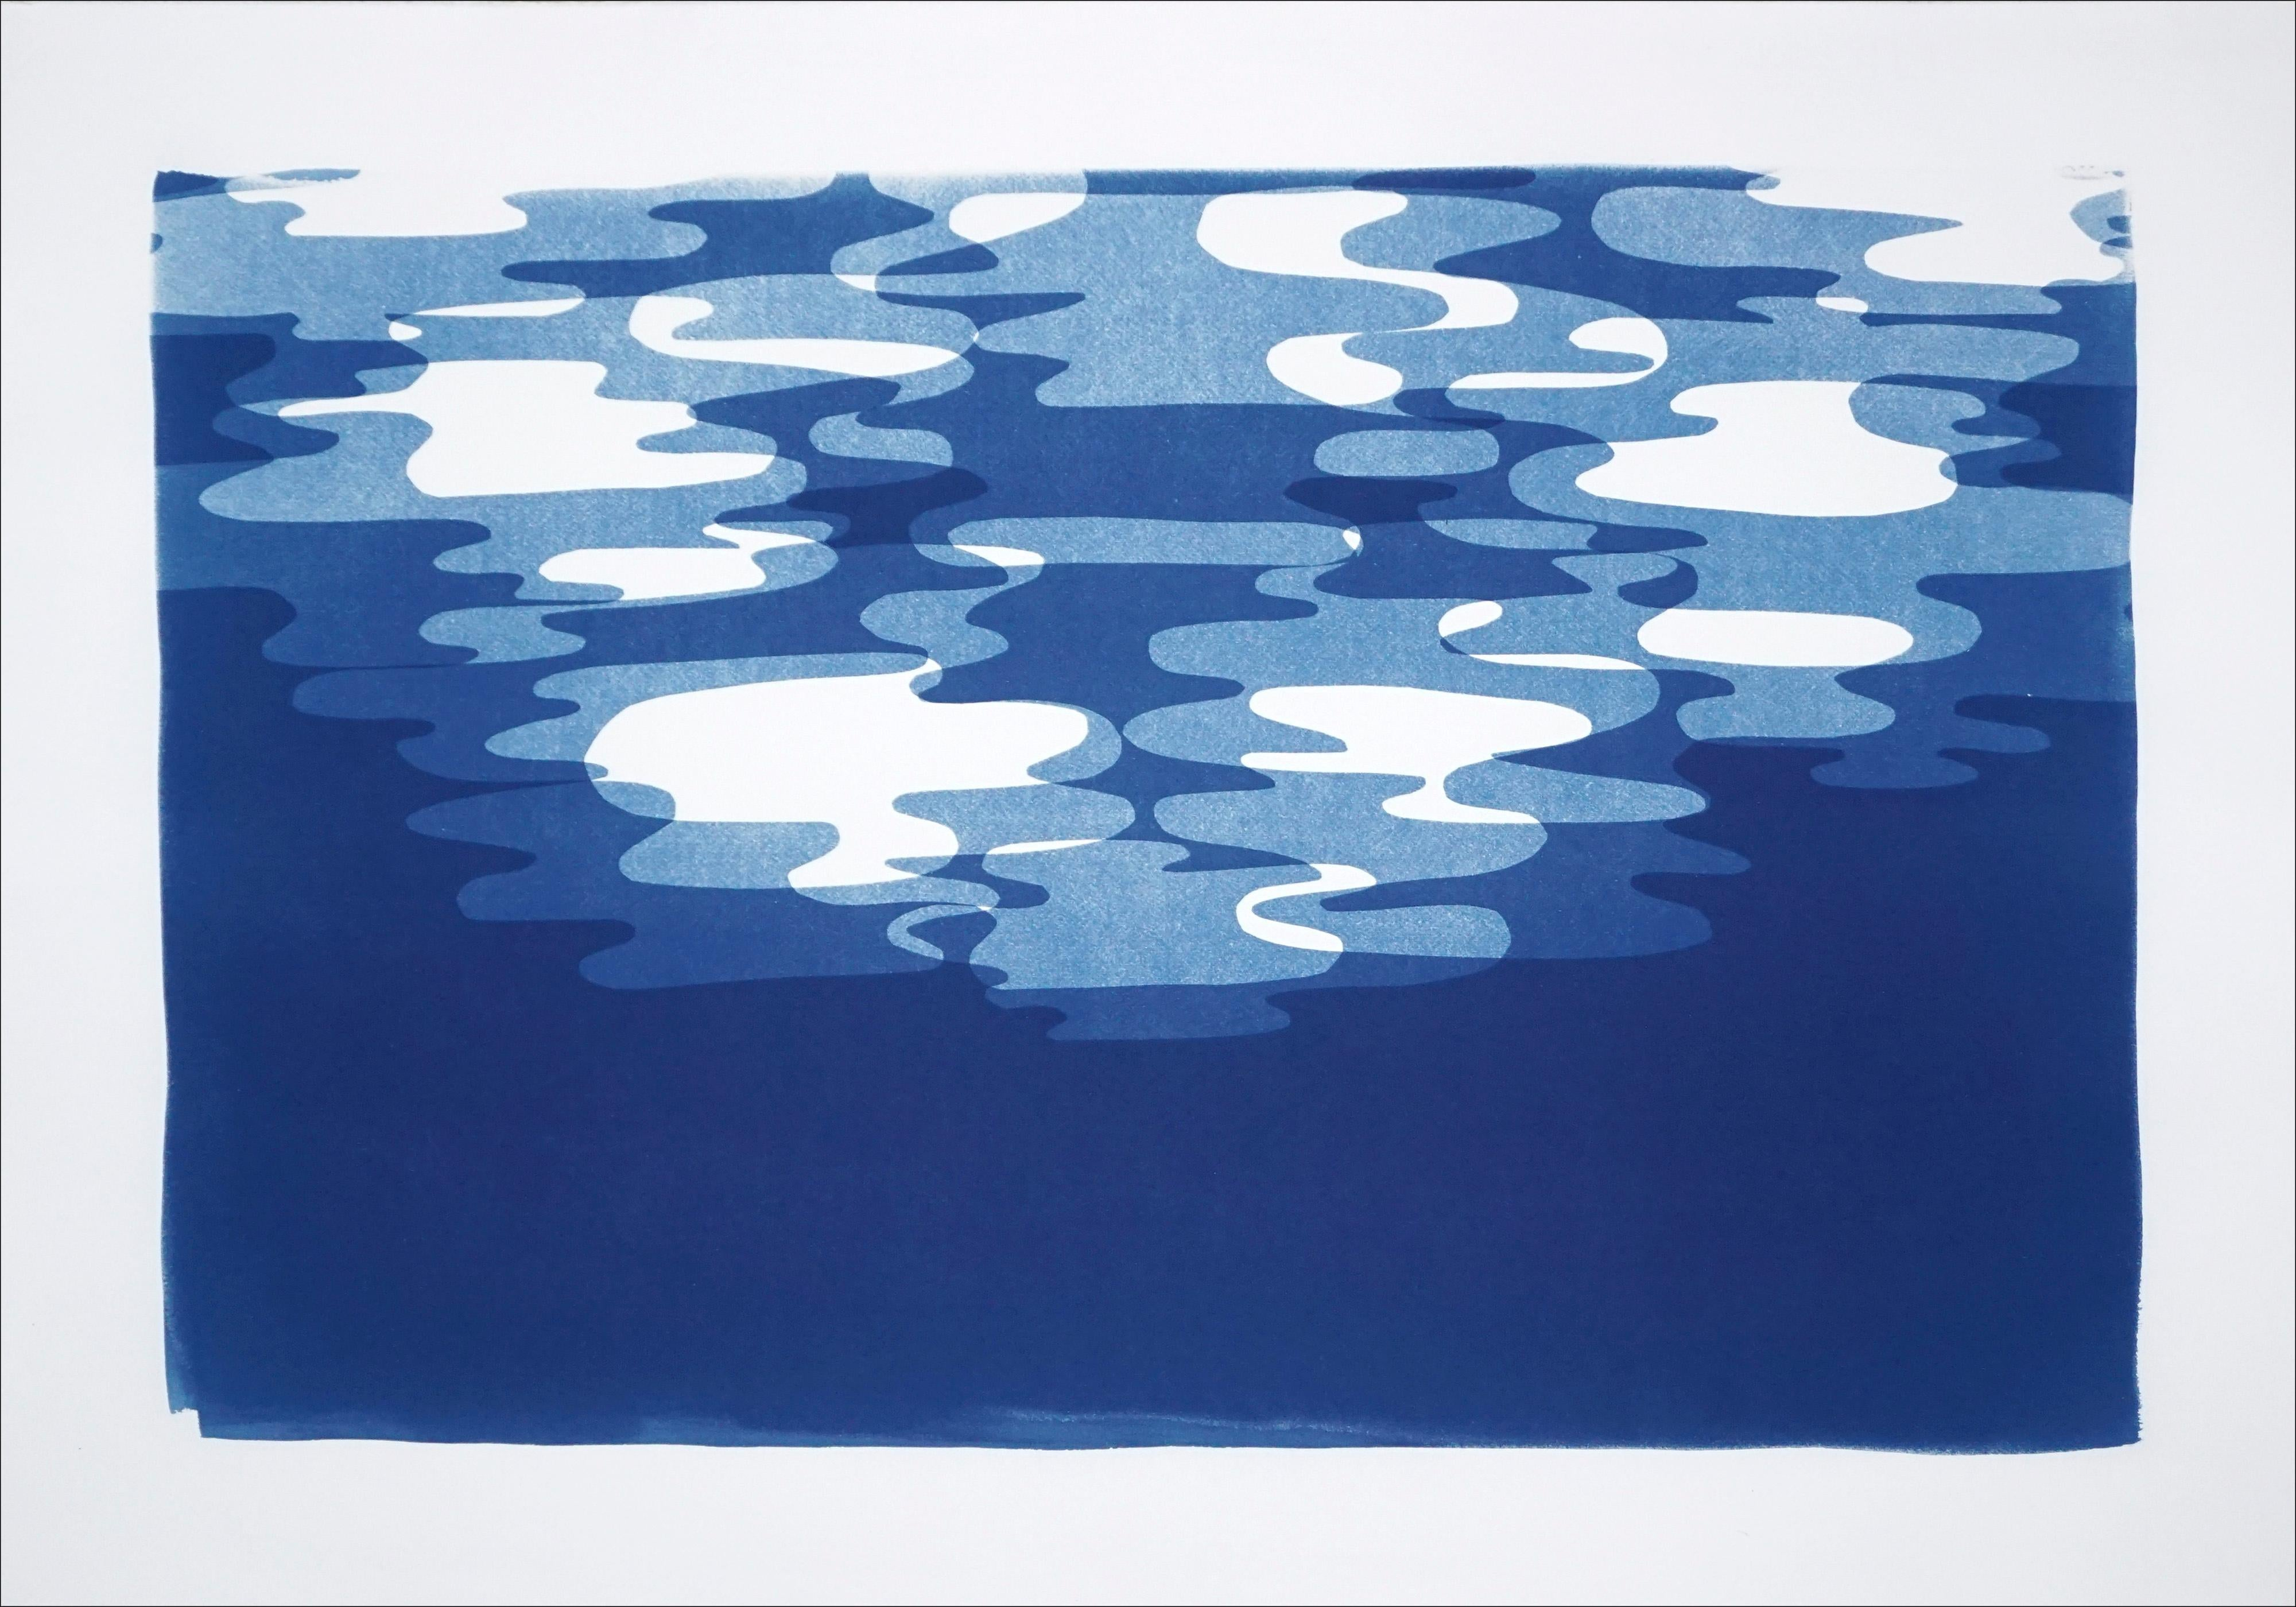 Monotype in Blue Tones of Moonlight Reflection Contours, White Watercolor Paper